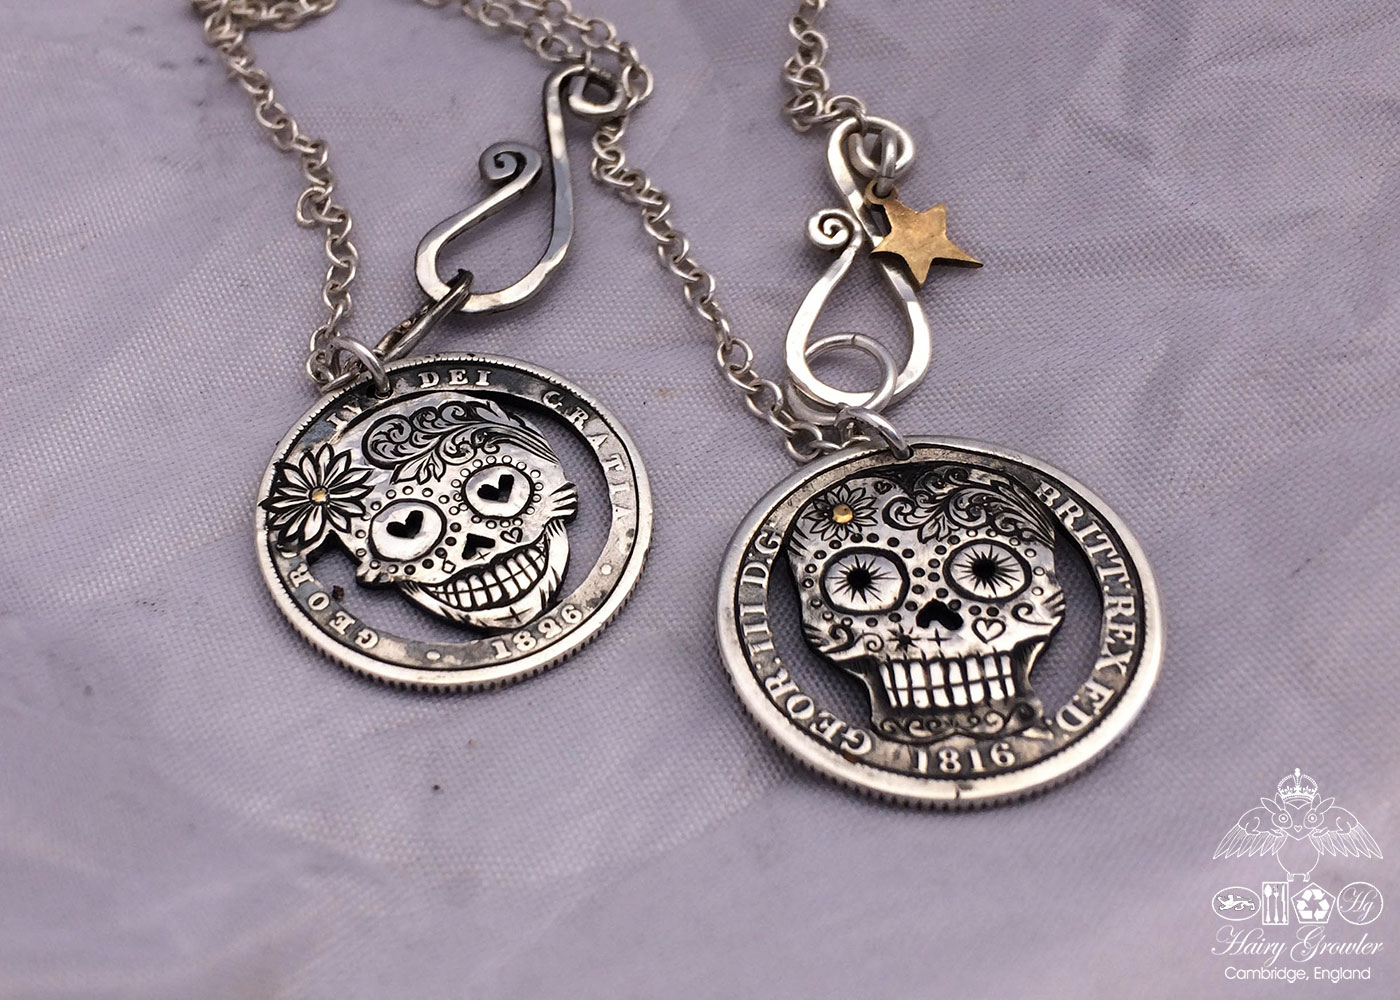 Handmade and upcycled silver shilling coin day-of-the-dead skull necklace